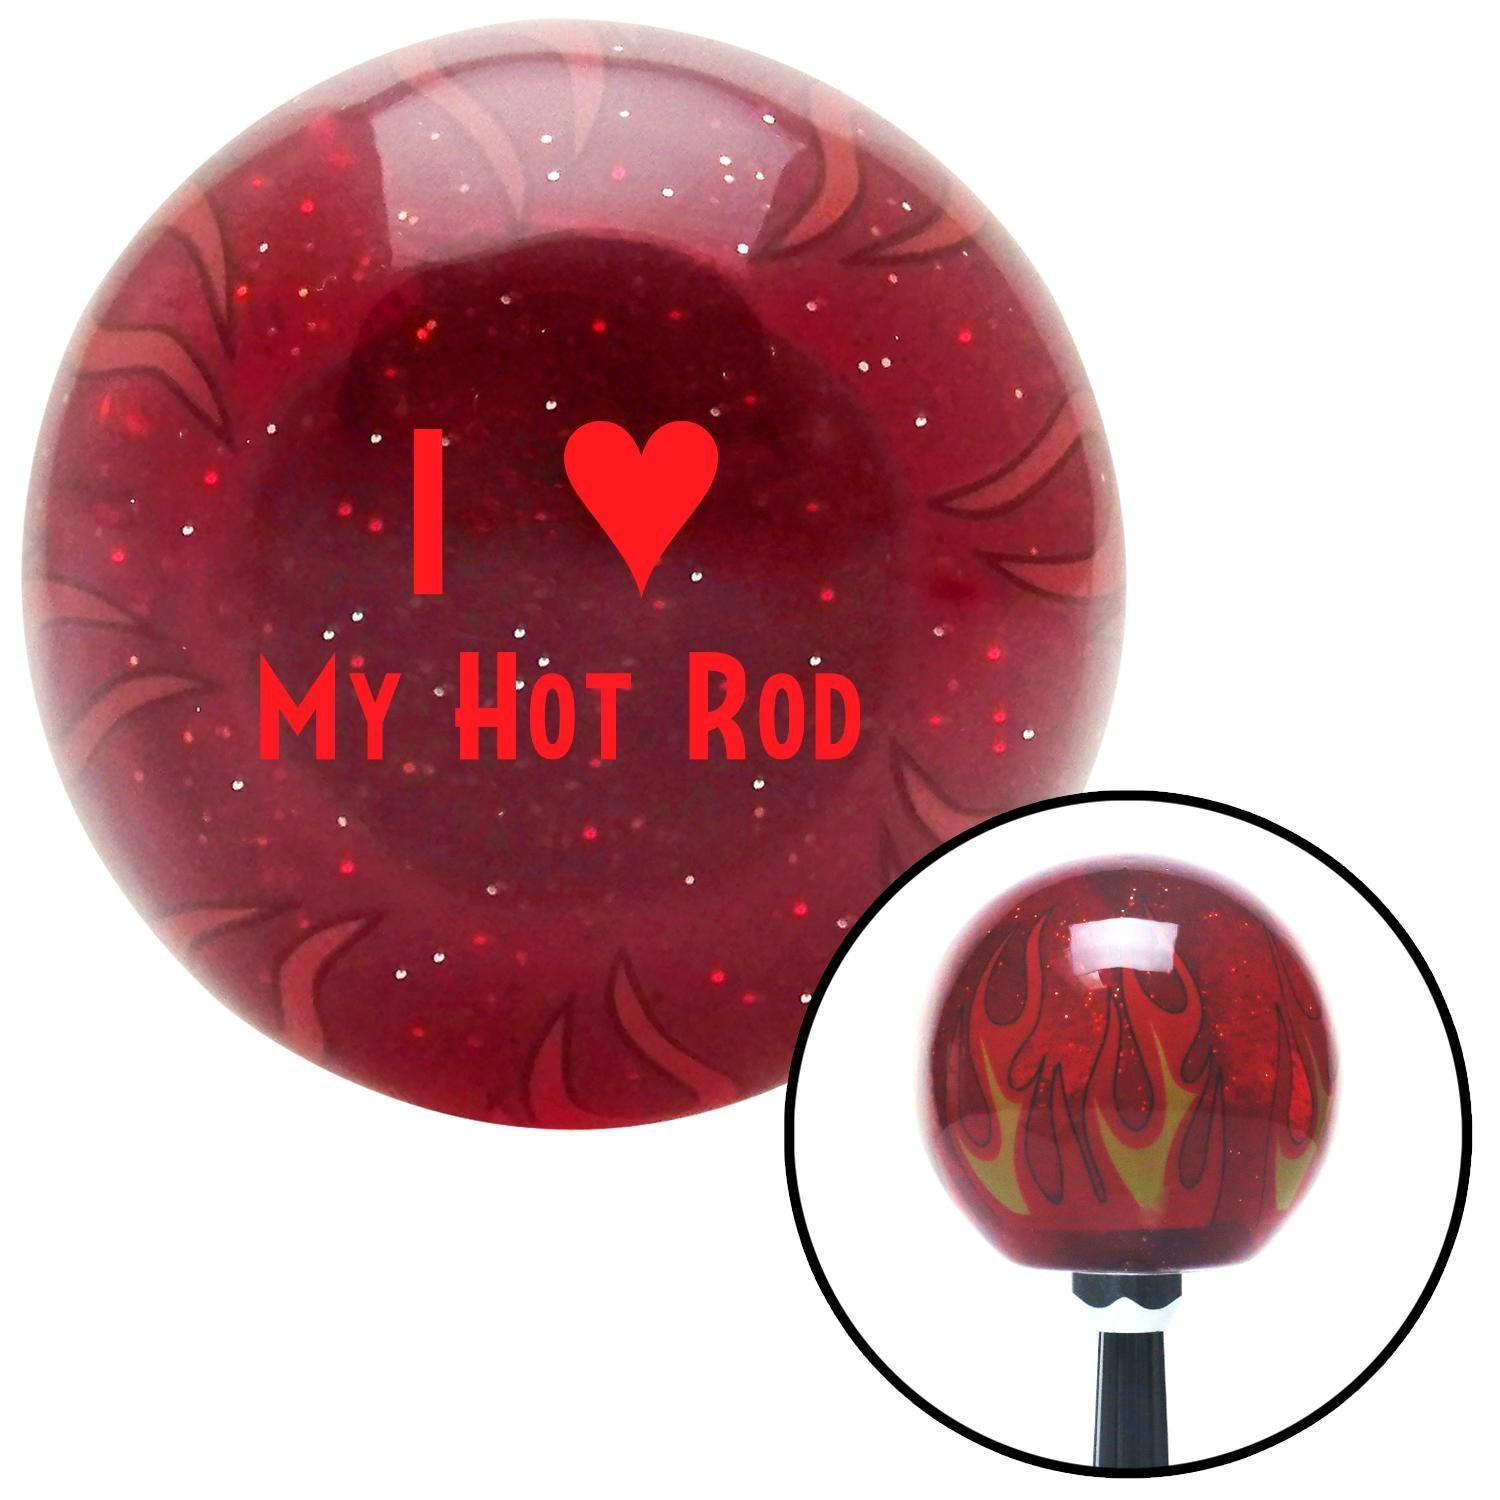 American Shifter 243766 Red Flame Metal Flake Shift Knob with M16 x 1.5 Insert Red I 3 My HOT Rod